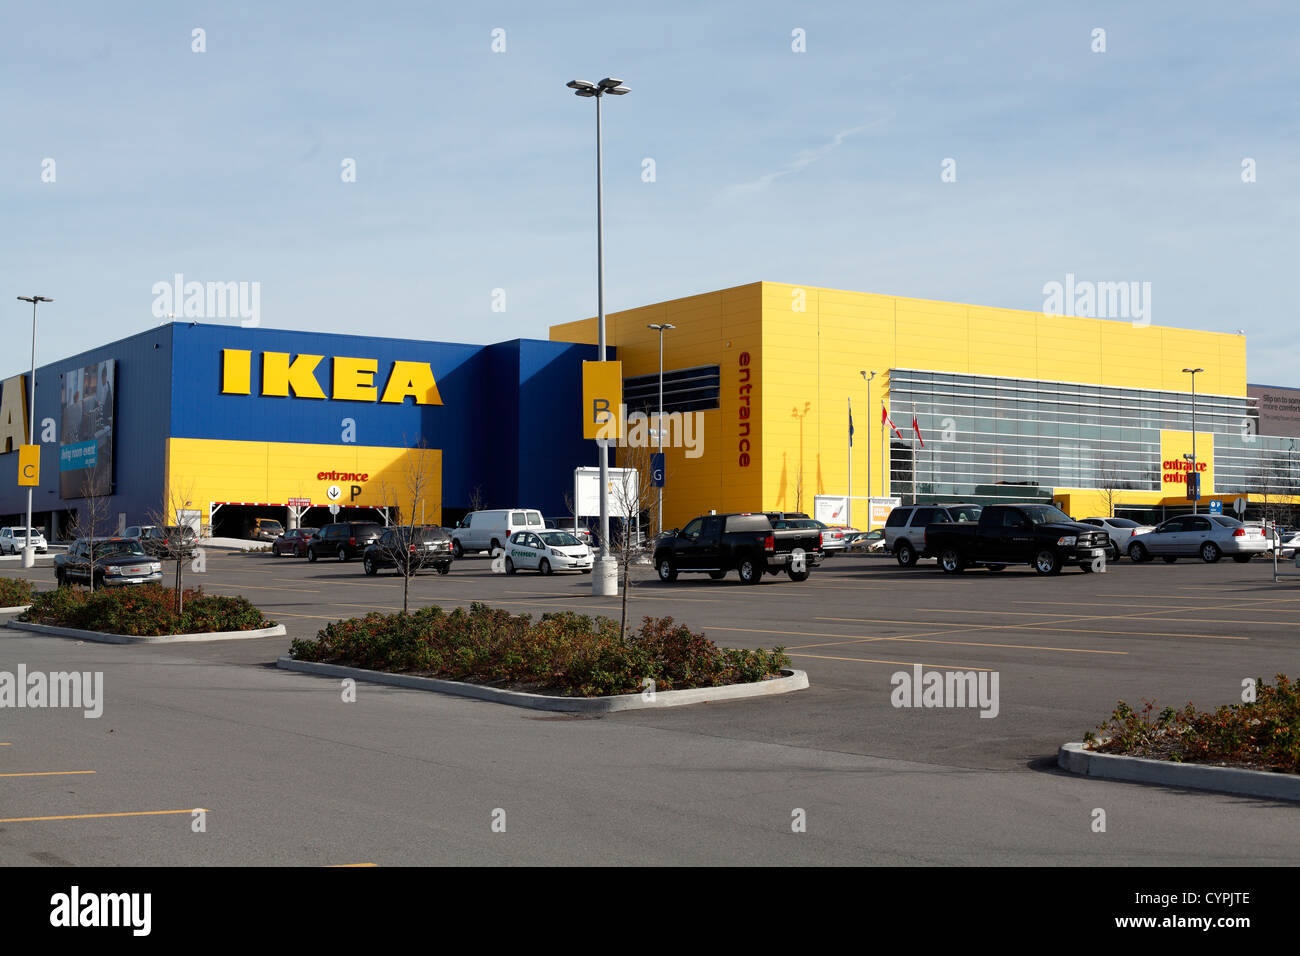 ikea-canadian-store-in-ottawa-currently-